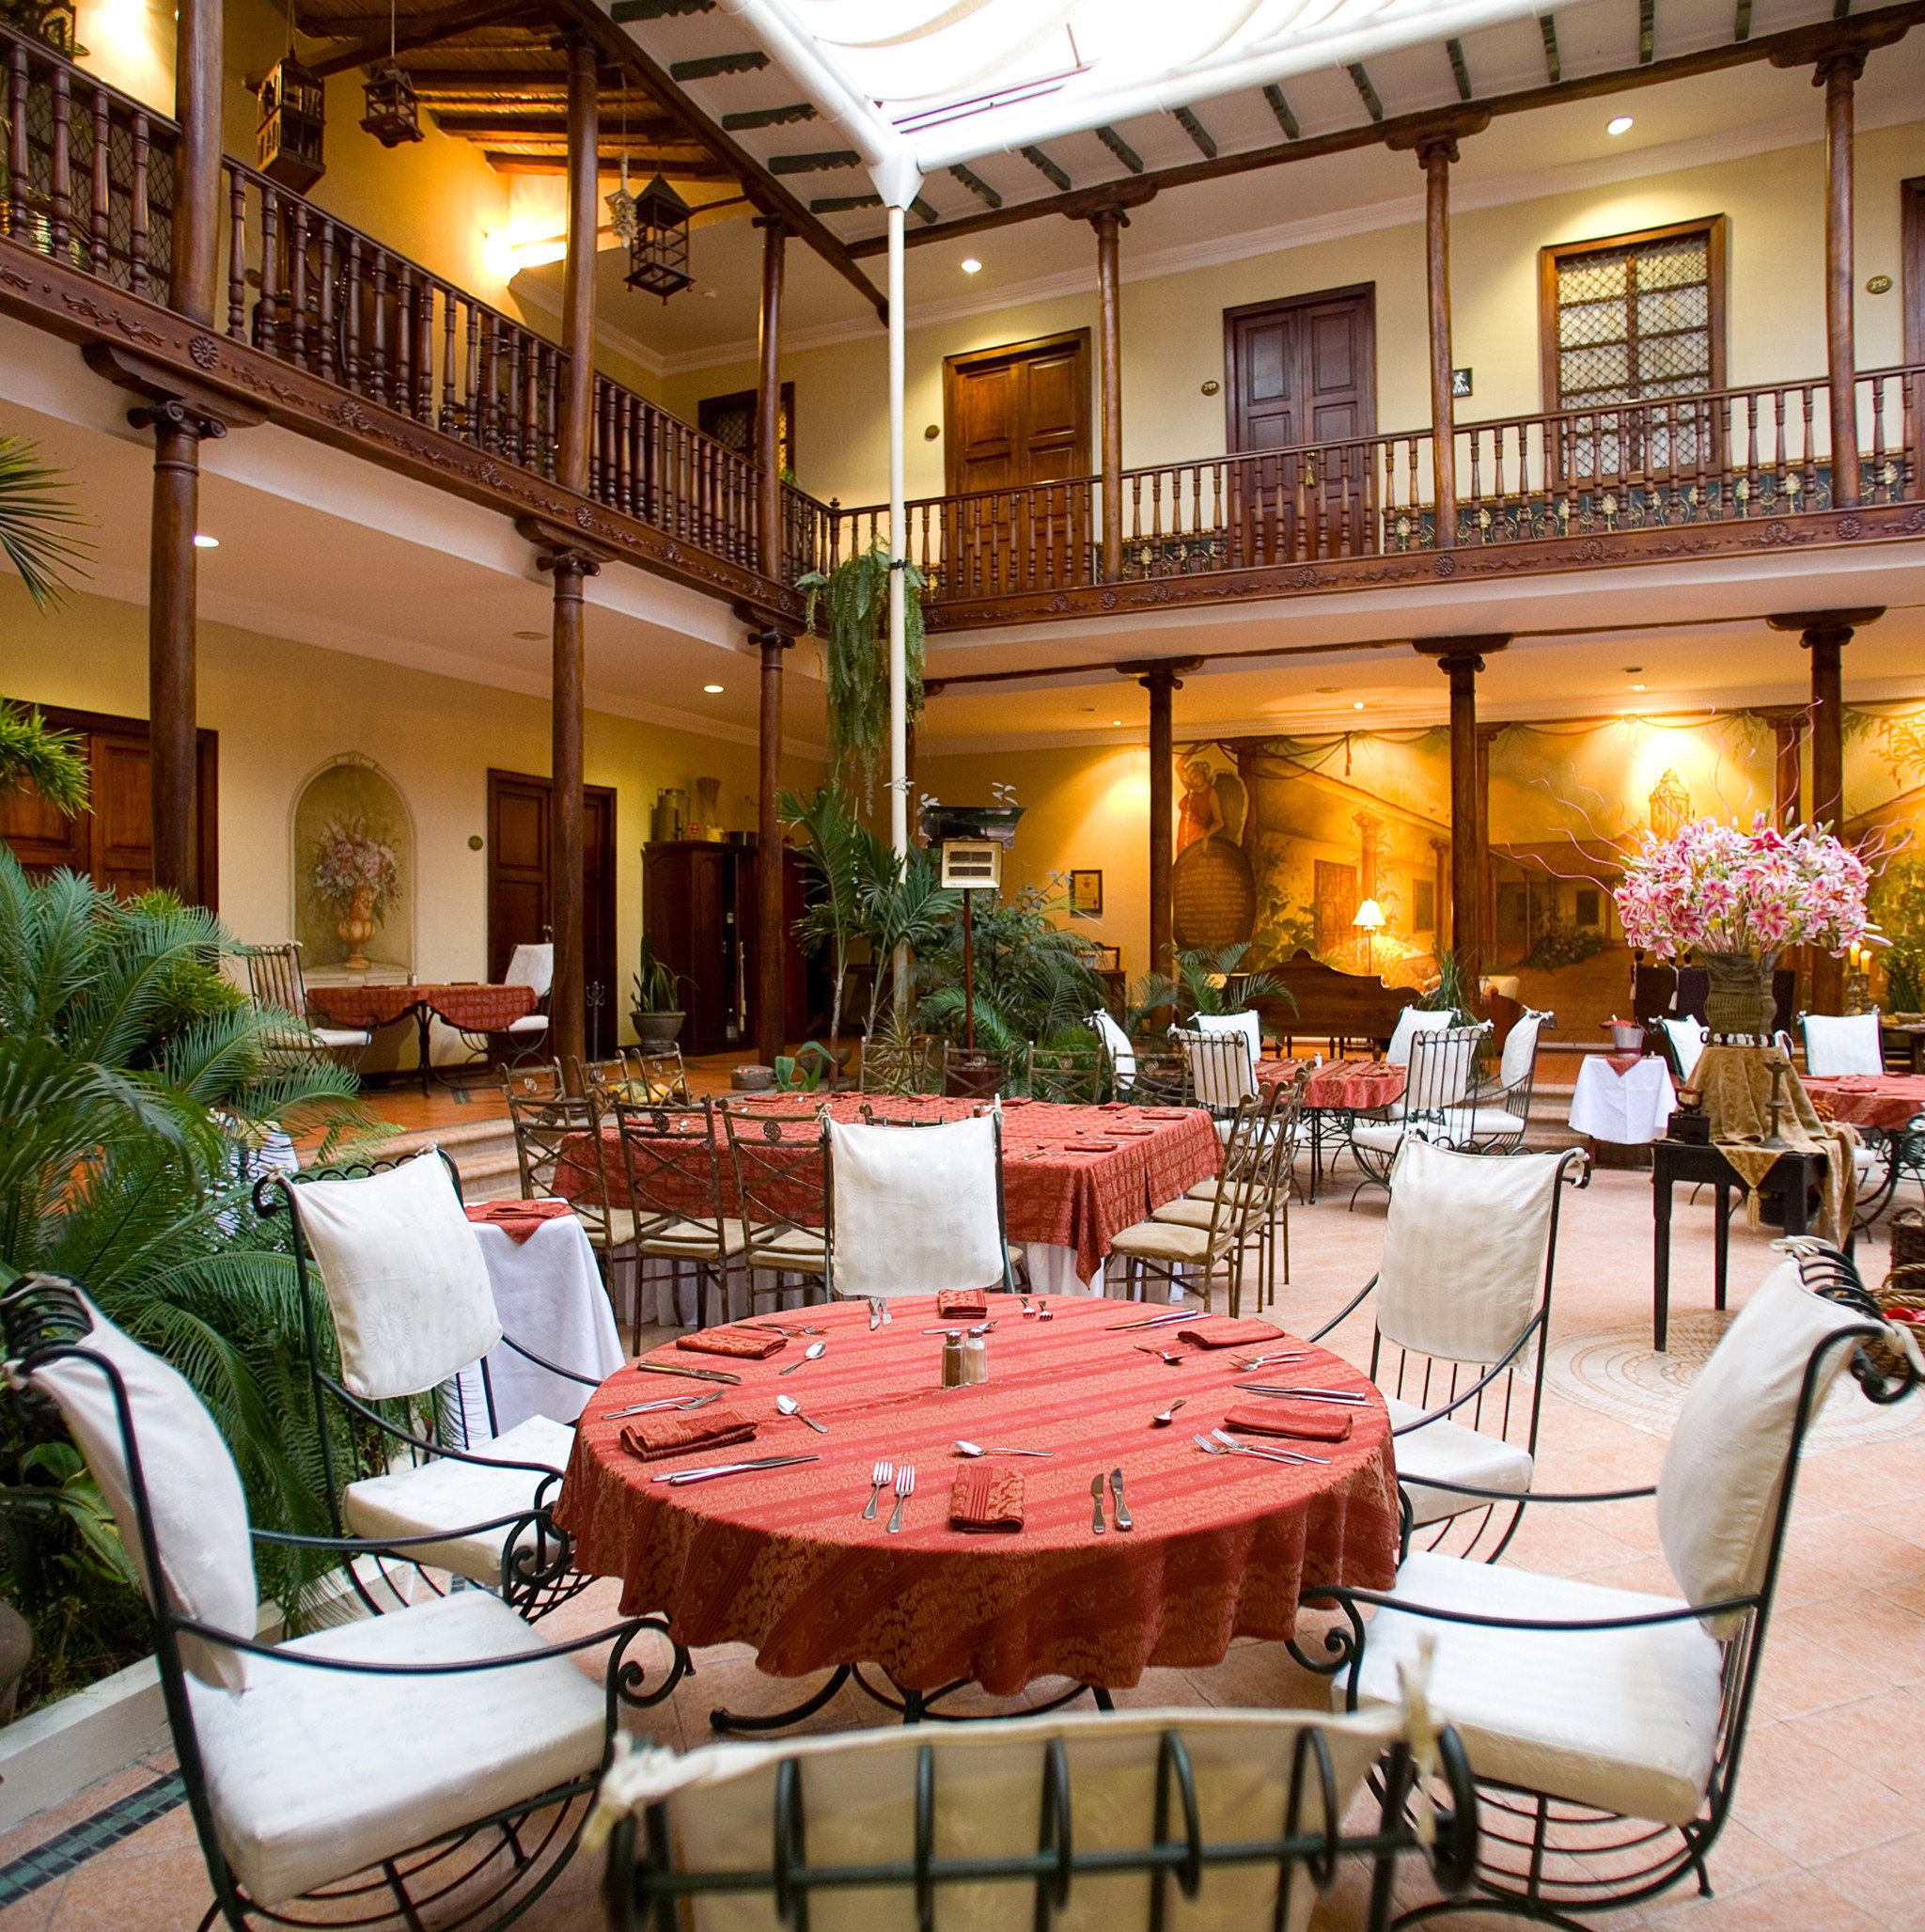 Boutique Business City Dining Drink Eat Romantic restaurant function hall Resort Lobby palace buffet ballroom